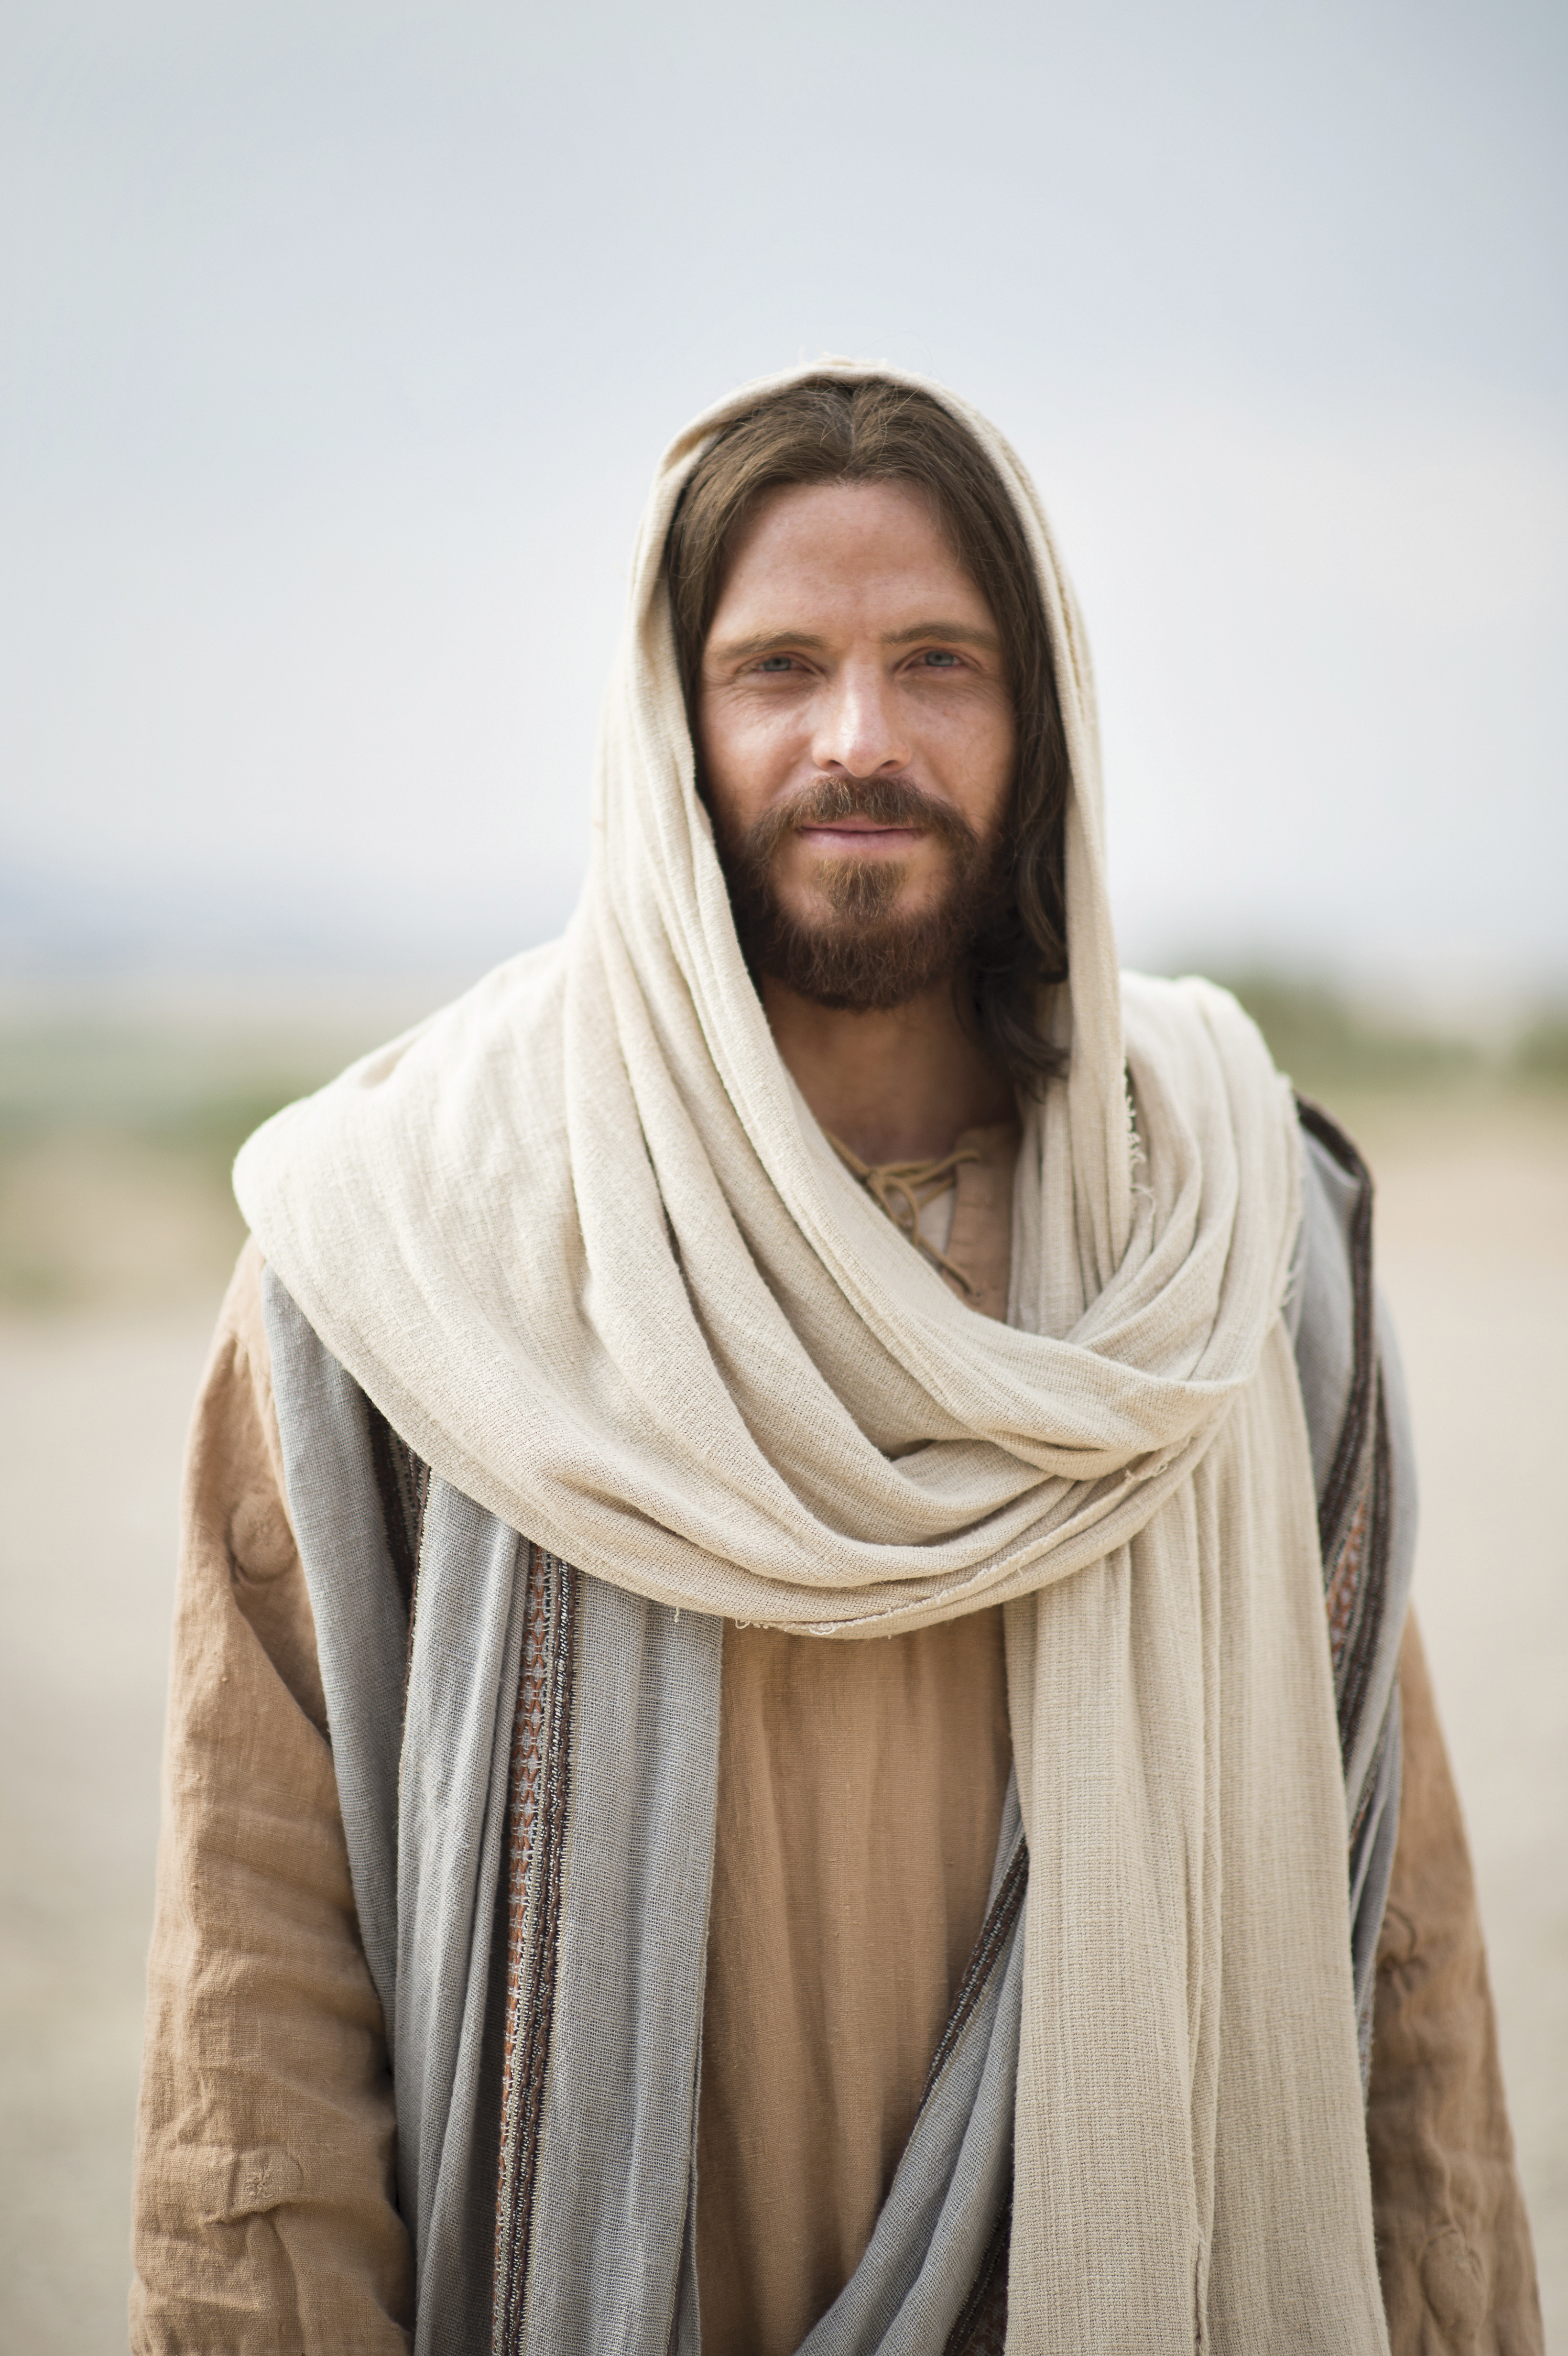 Portrait of Jesus Christ standing alone and smiling.